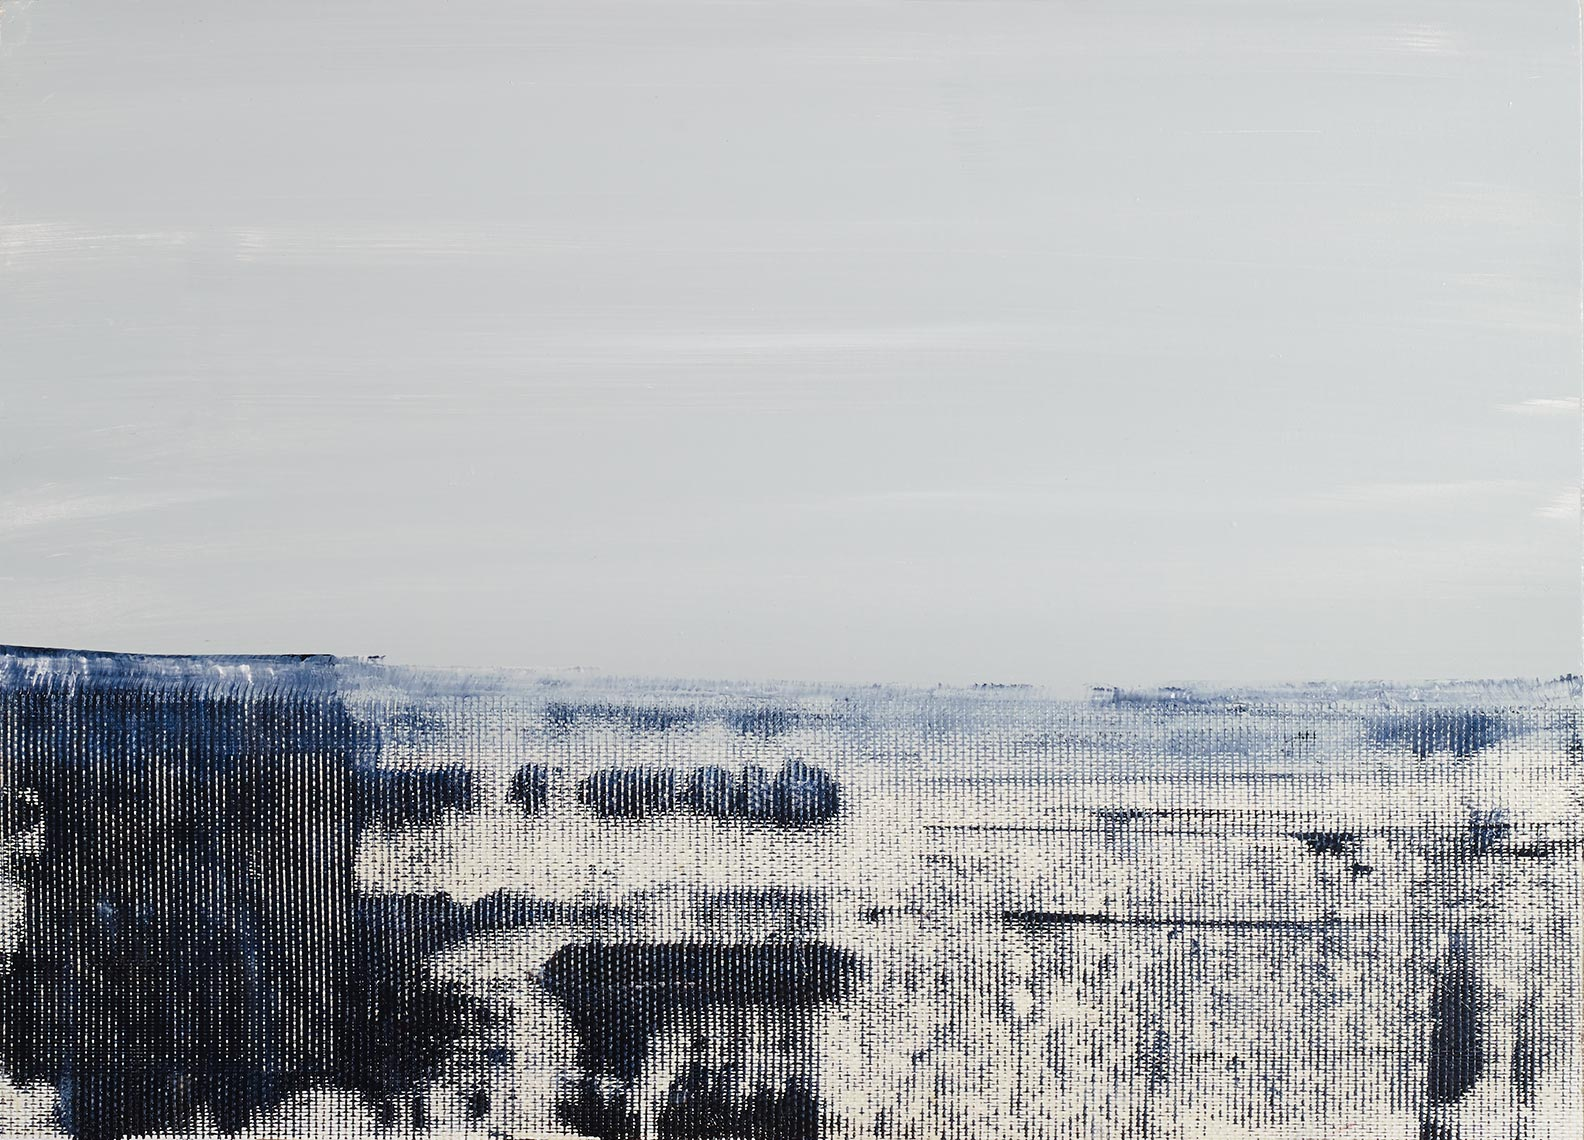 The Grey Marshes